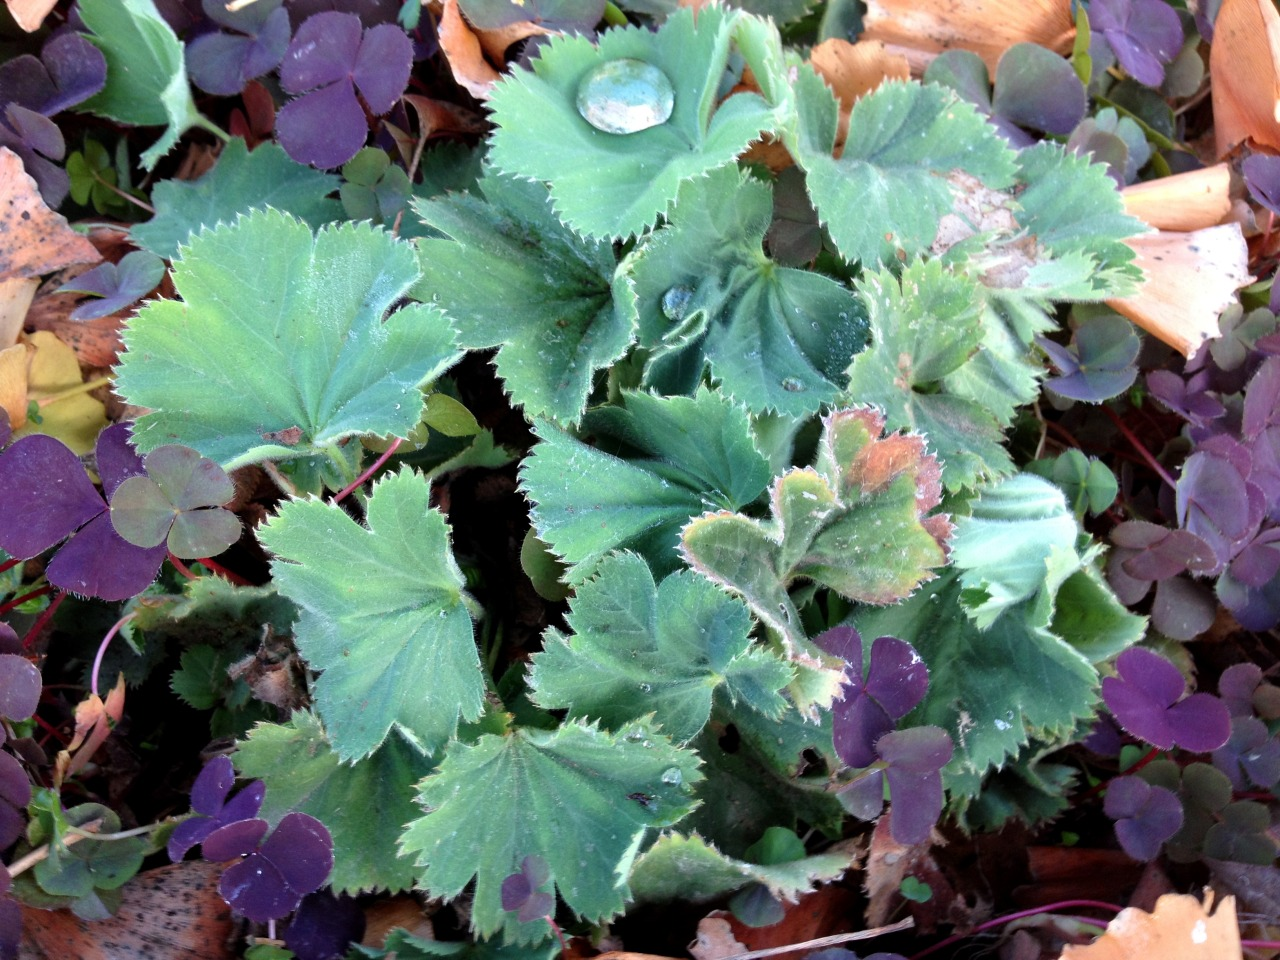 January 24, 2013    Scene from the streetside garden: Alchemilla mollis (Lady's Mantle) with Oxalis 'Garnet' in a sea of ginkgo leaves.